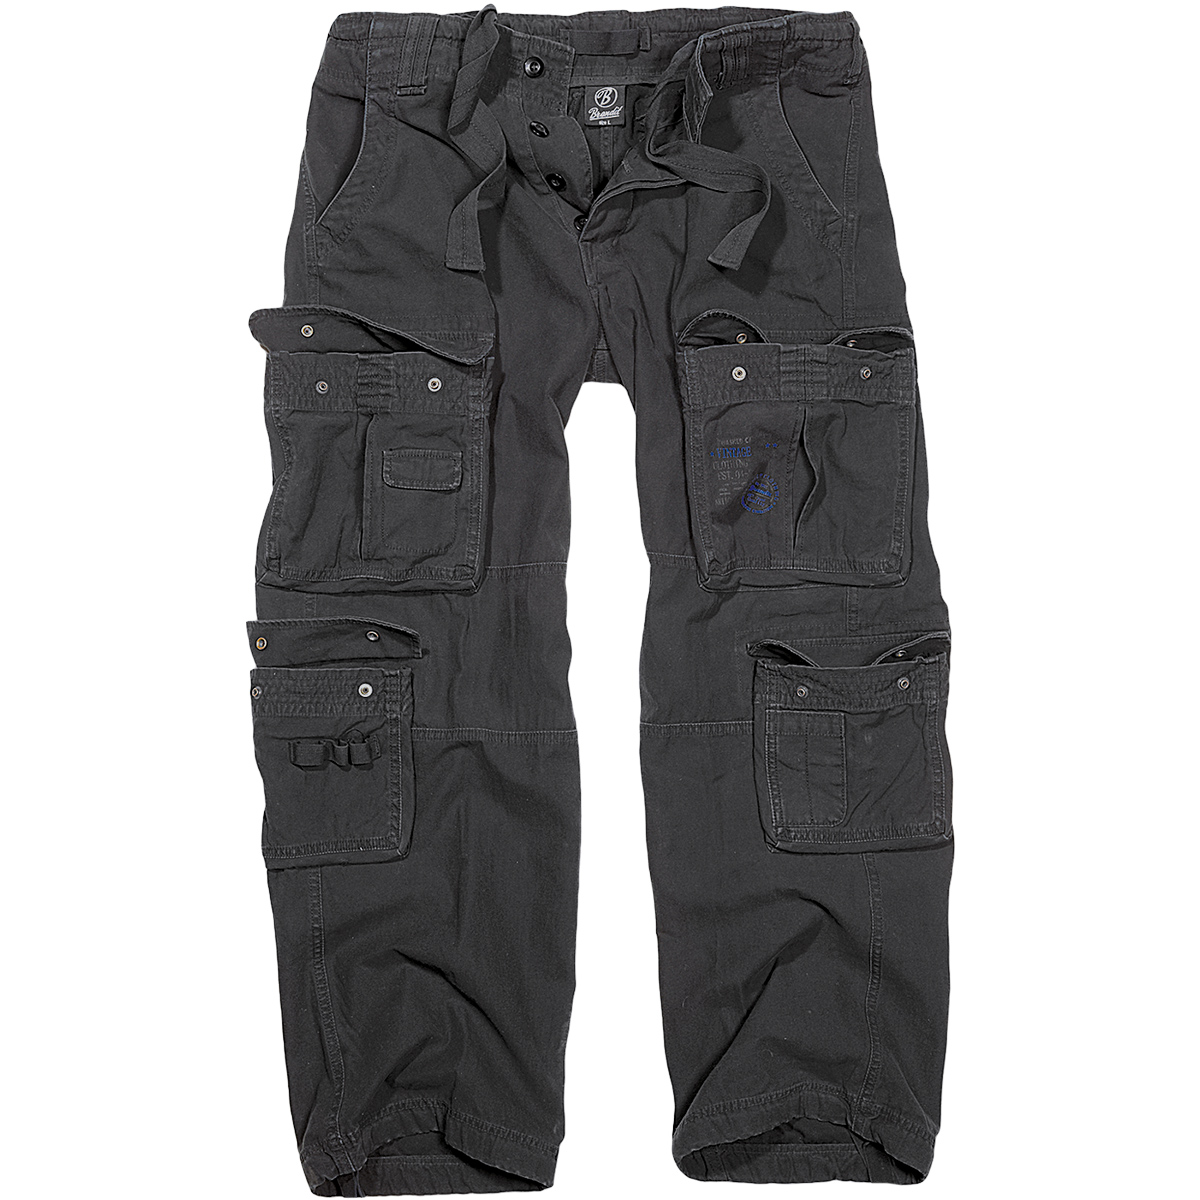 BRANDIT MENS PURE VINTAGE POLICE COMBAT TROUSERS SECURITY WORK CARGO PANTS BLACK